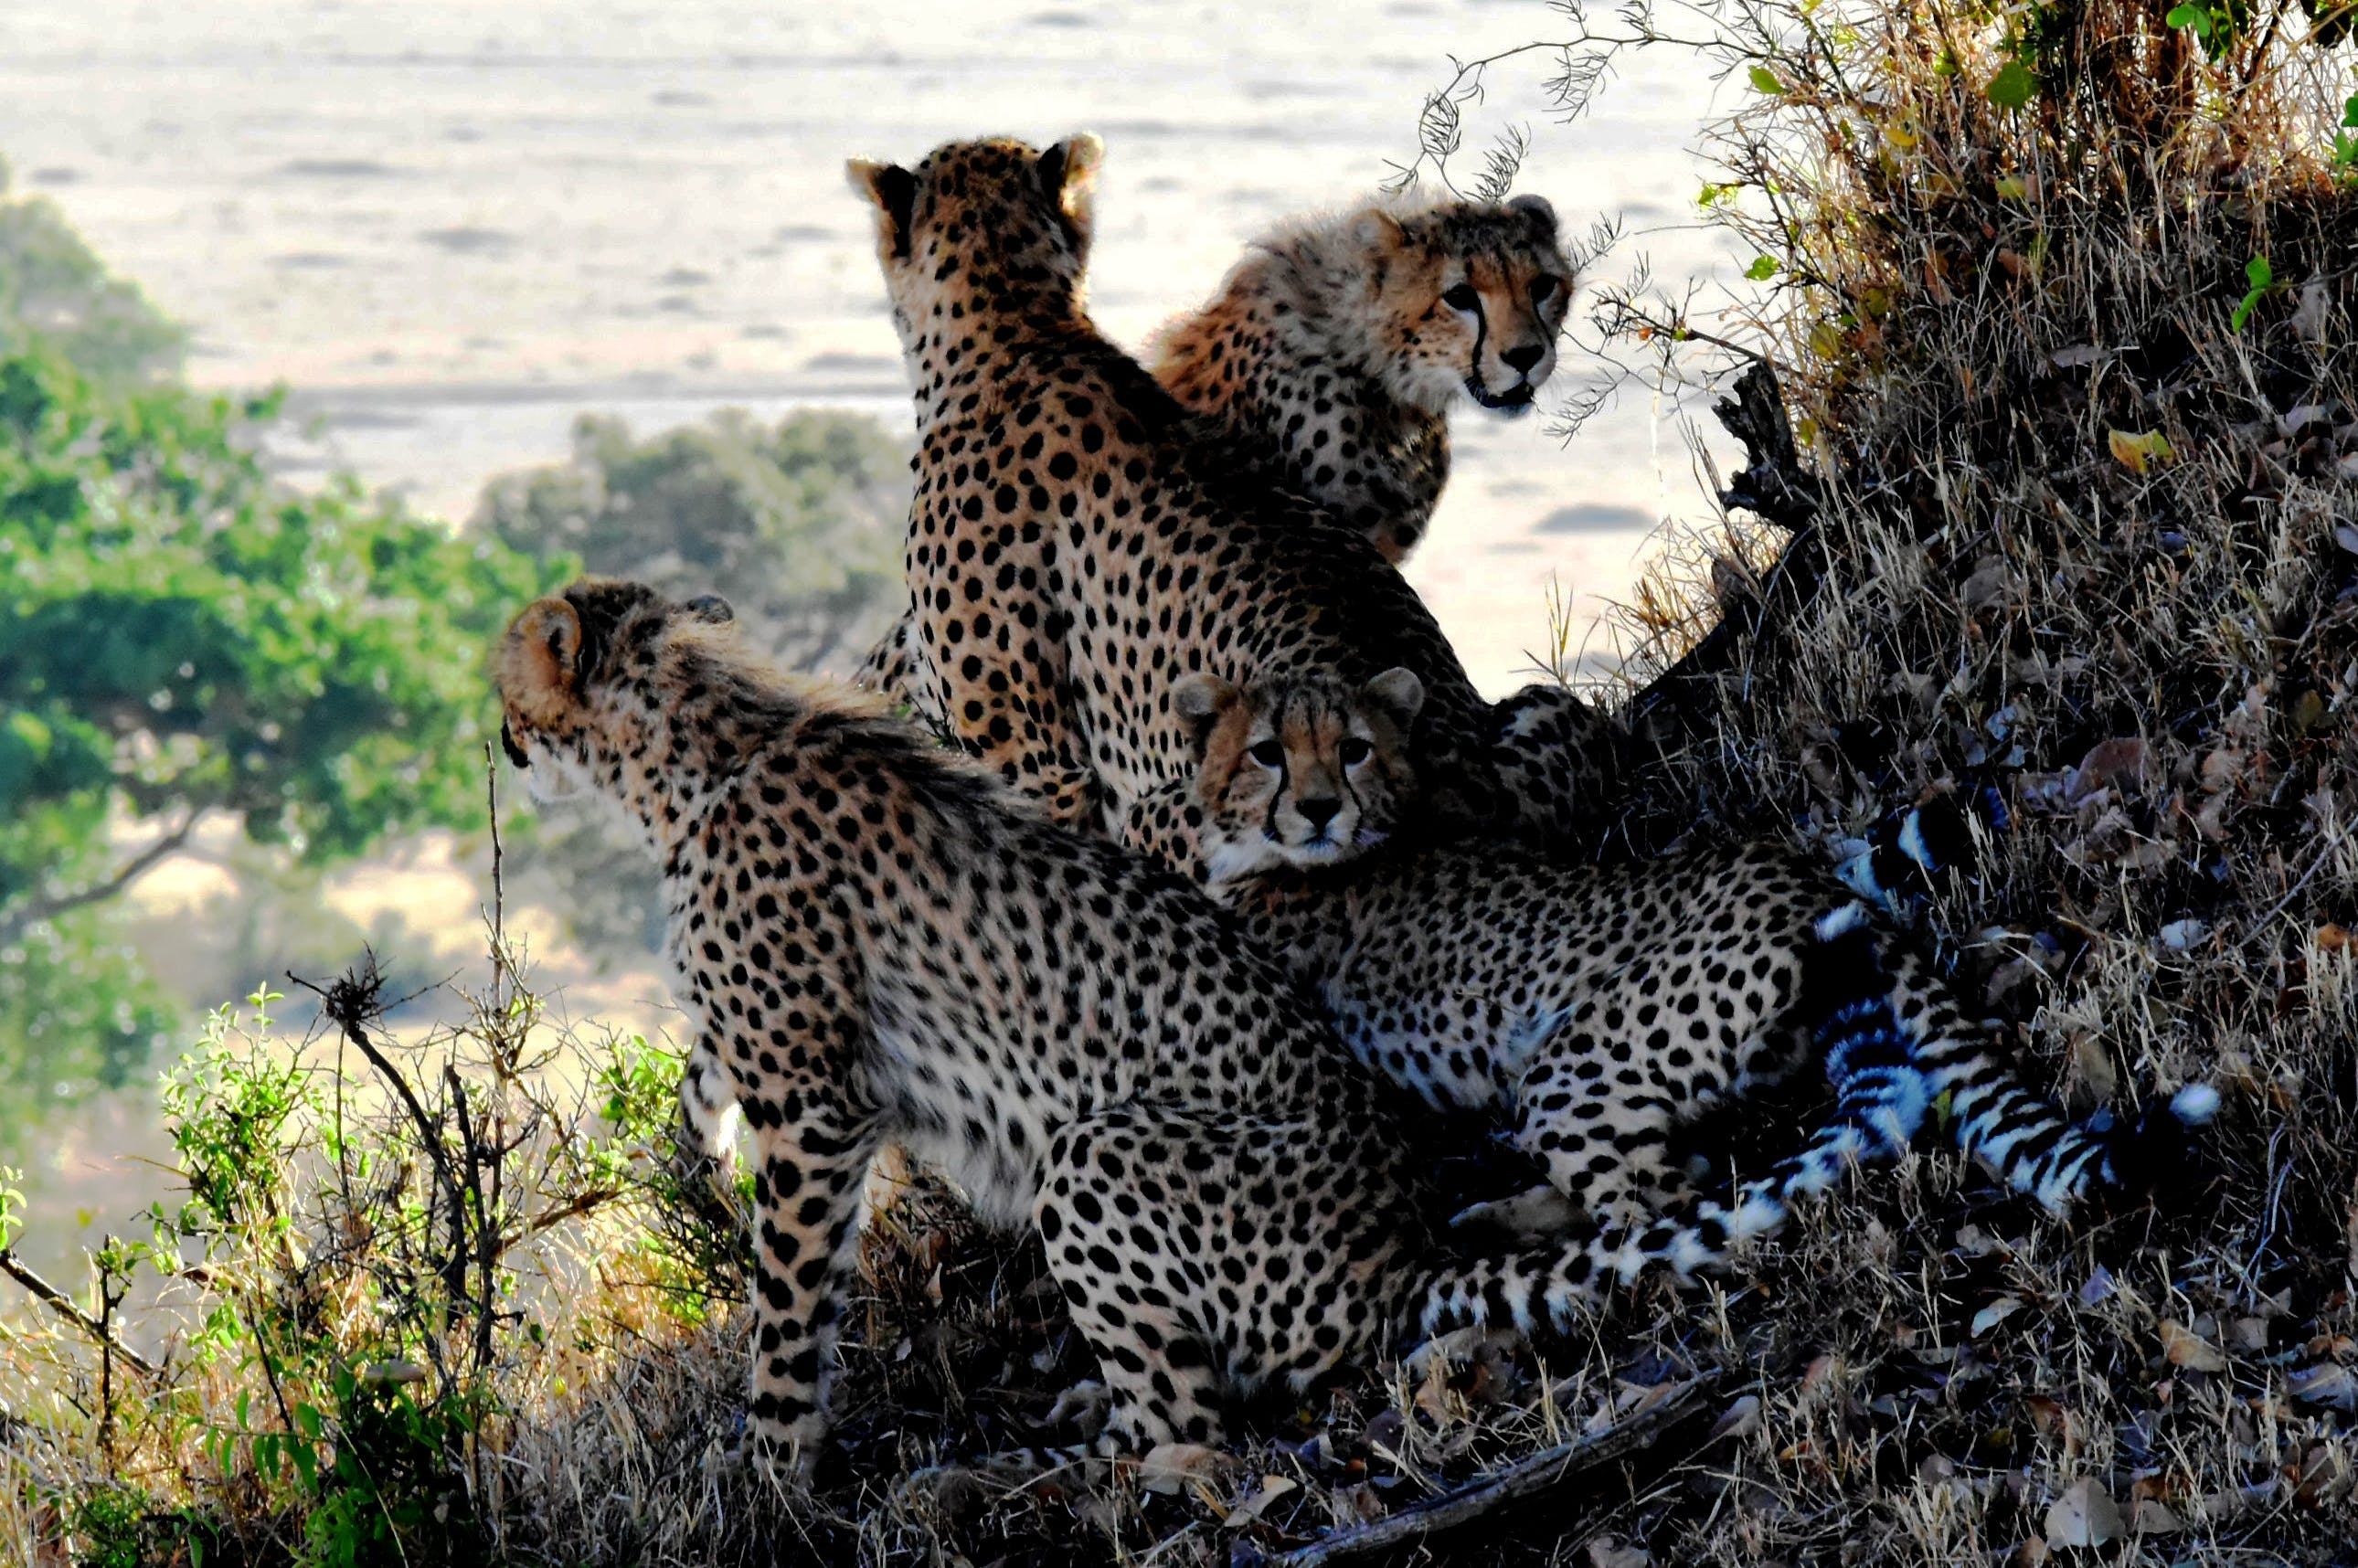 4 Cheetahs Sitting and Lying during Daytine